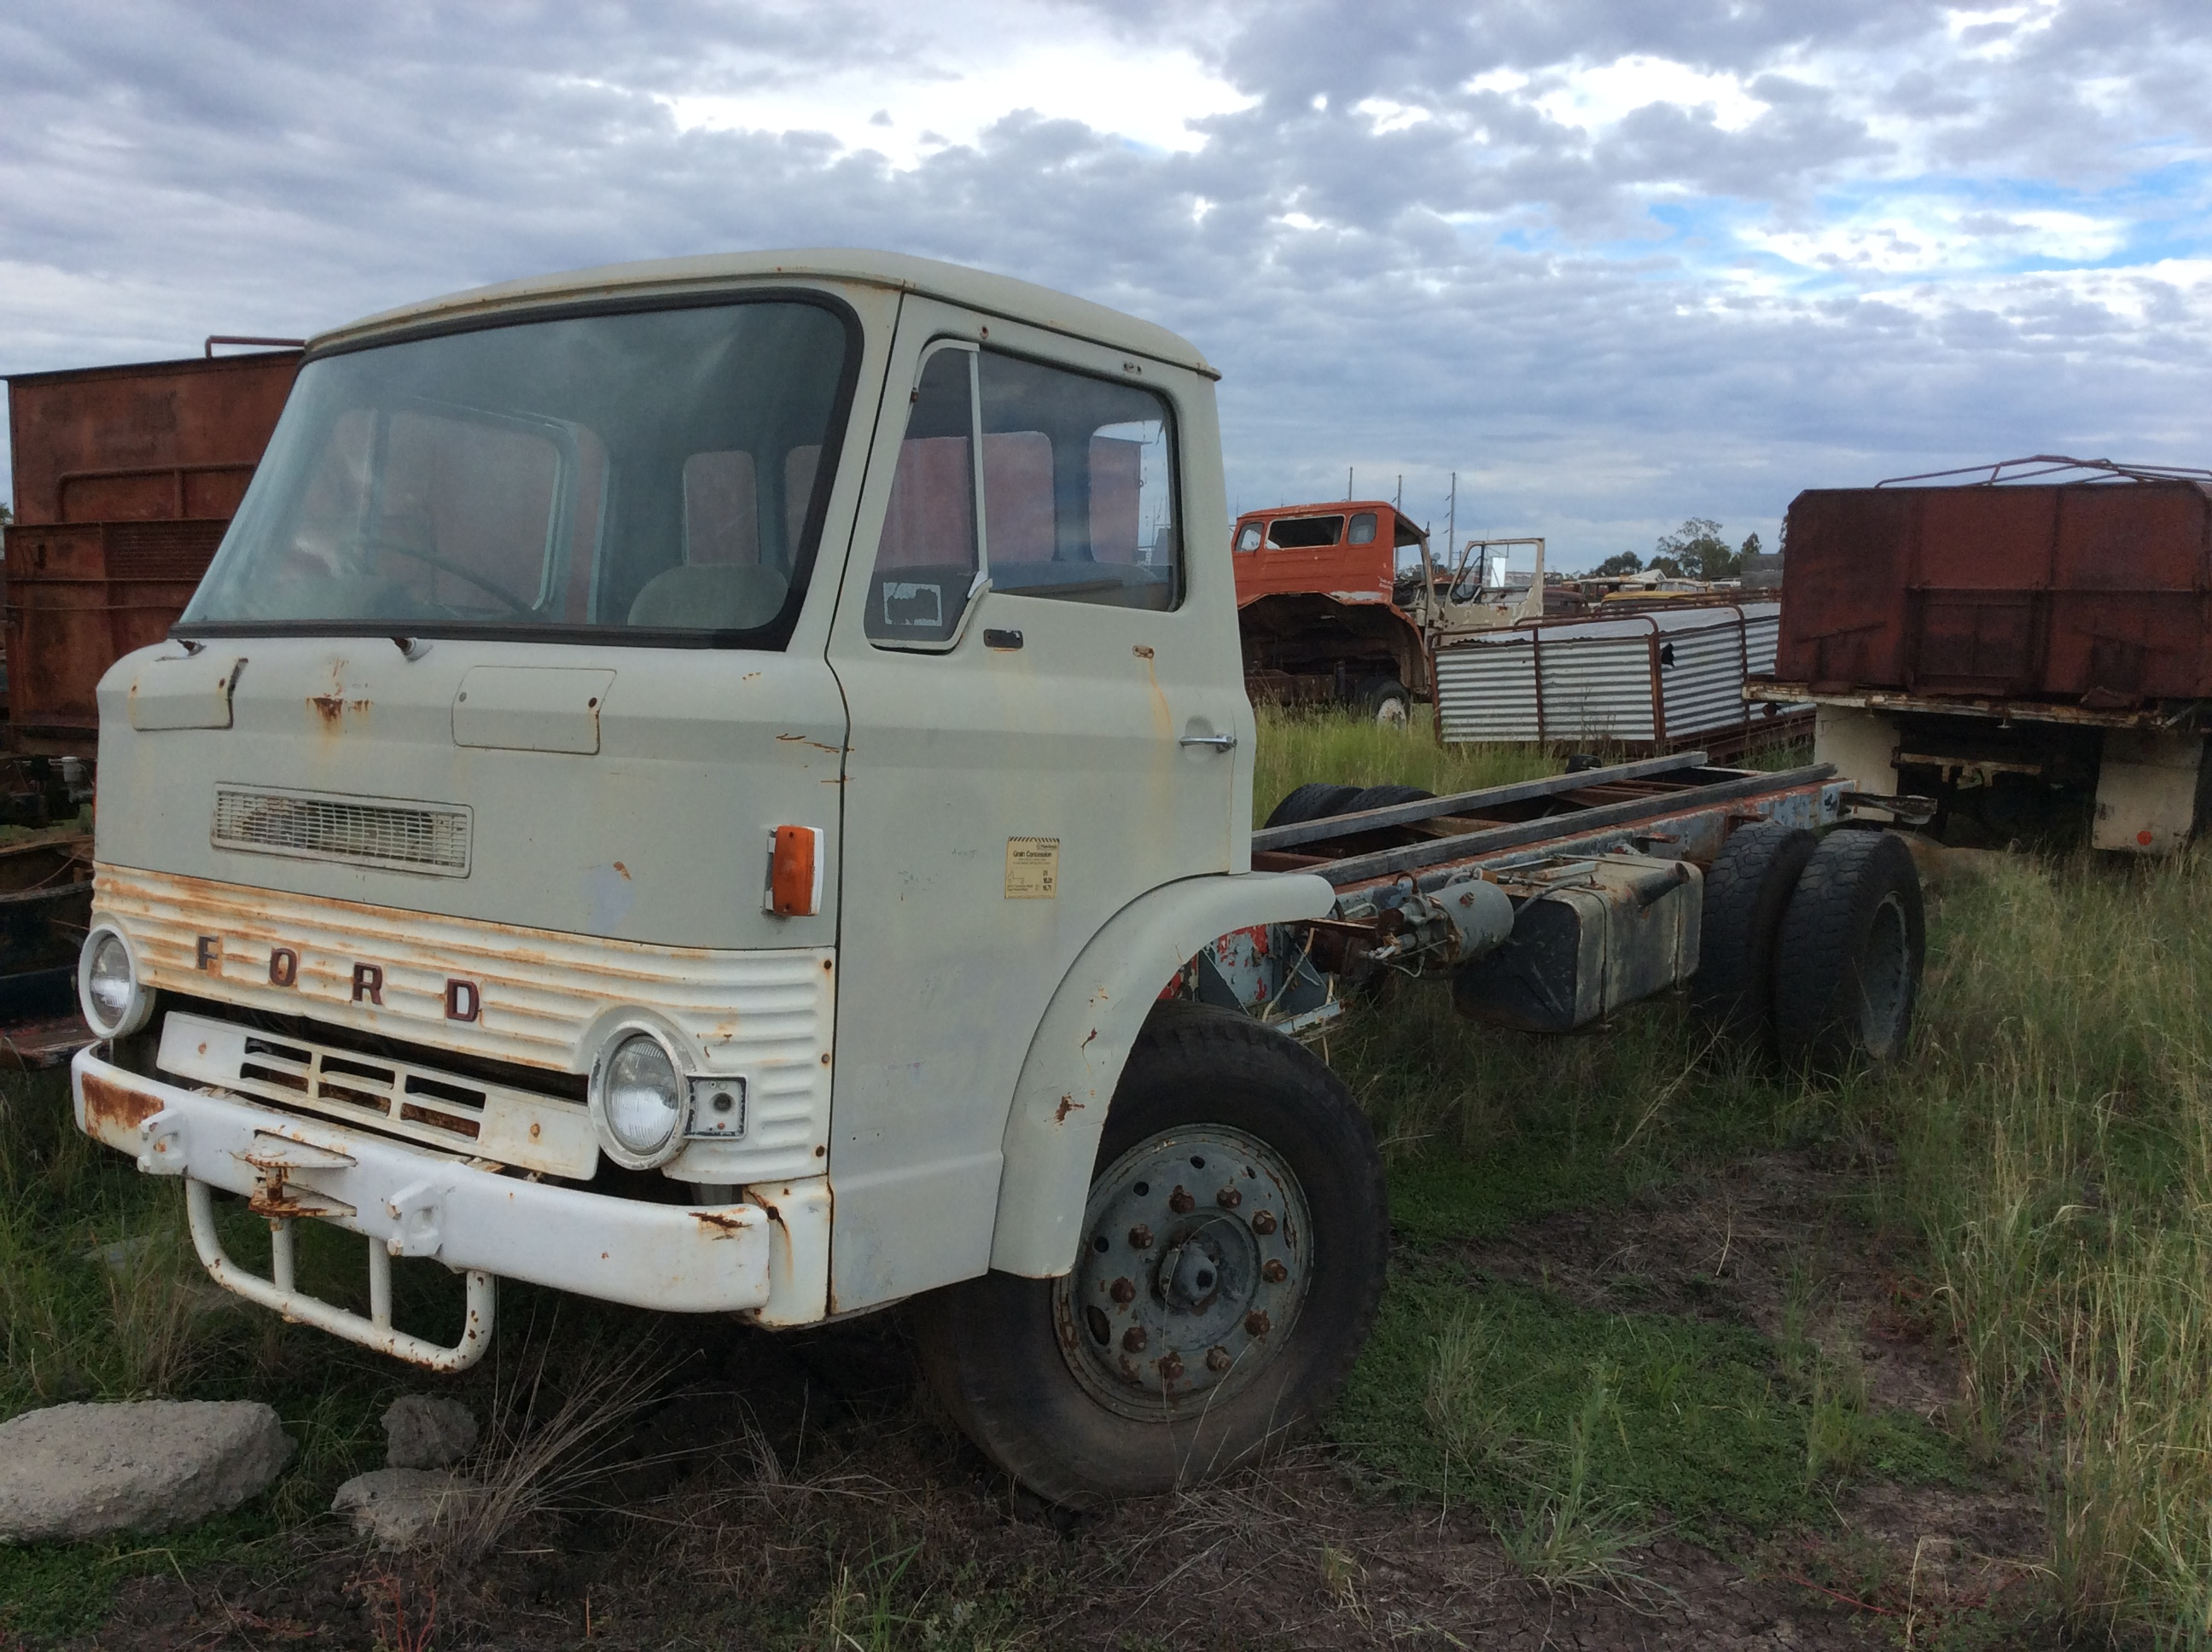 Ford d-series photo - 3